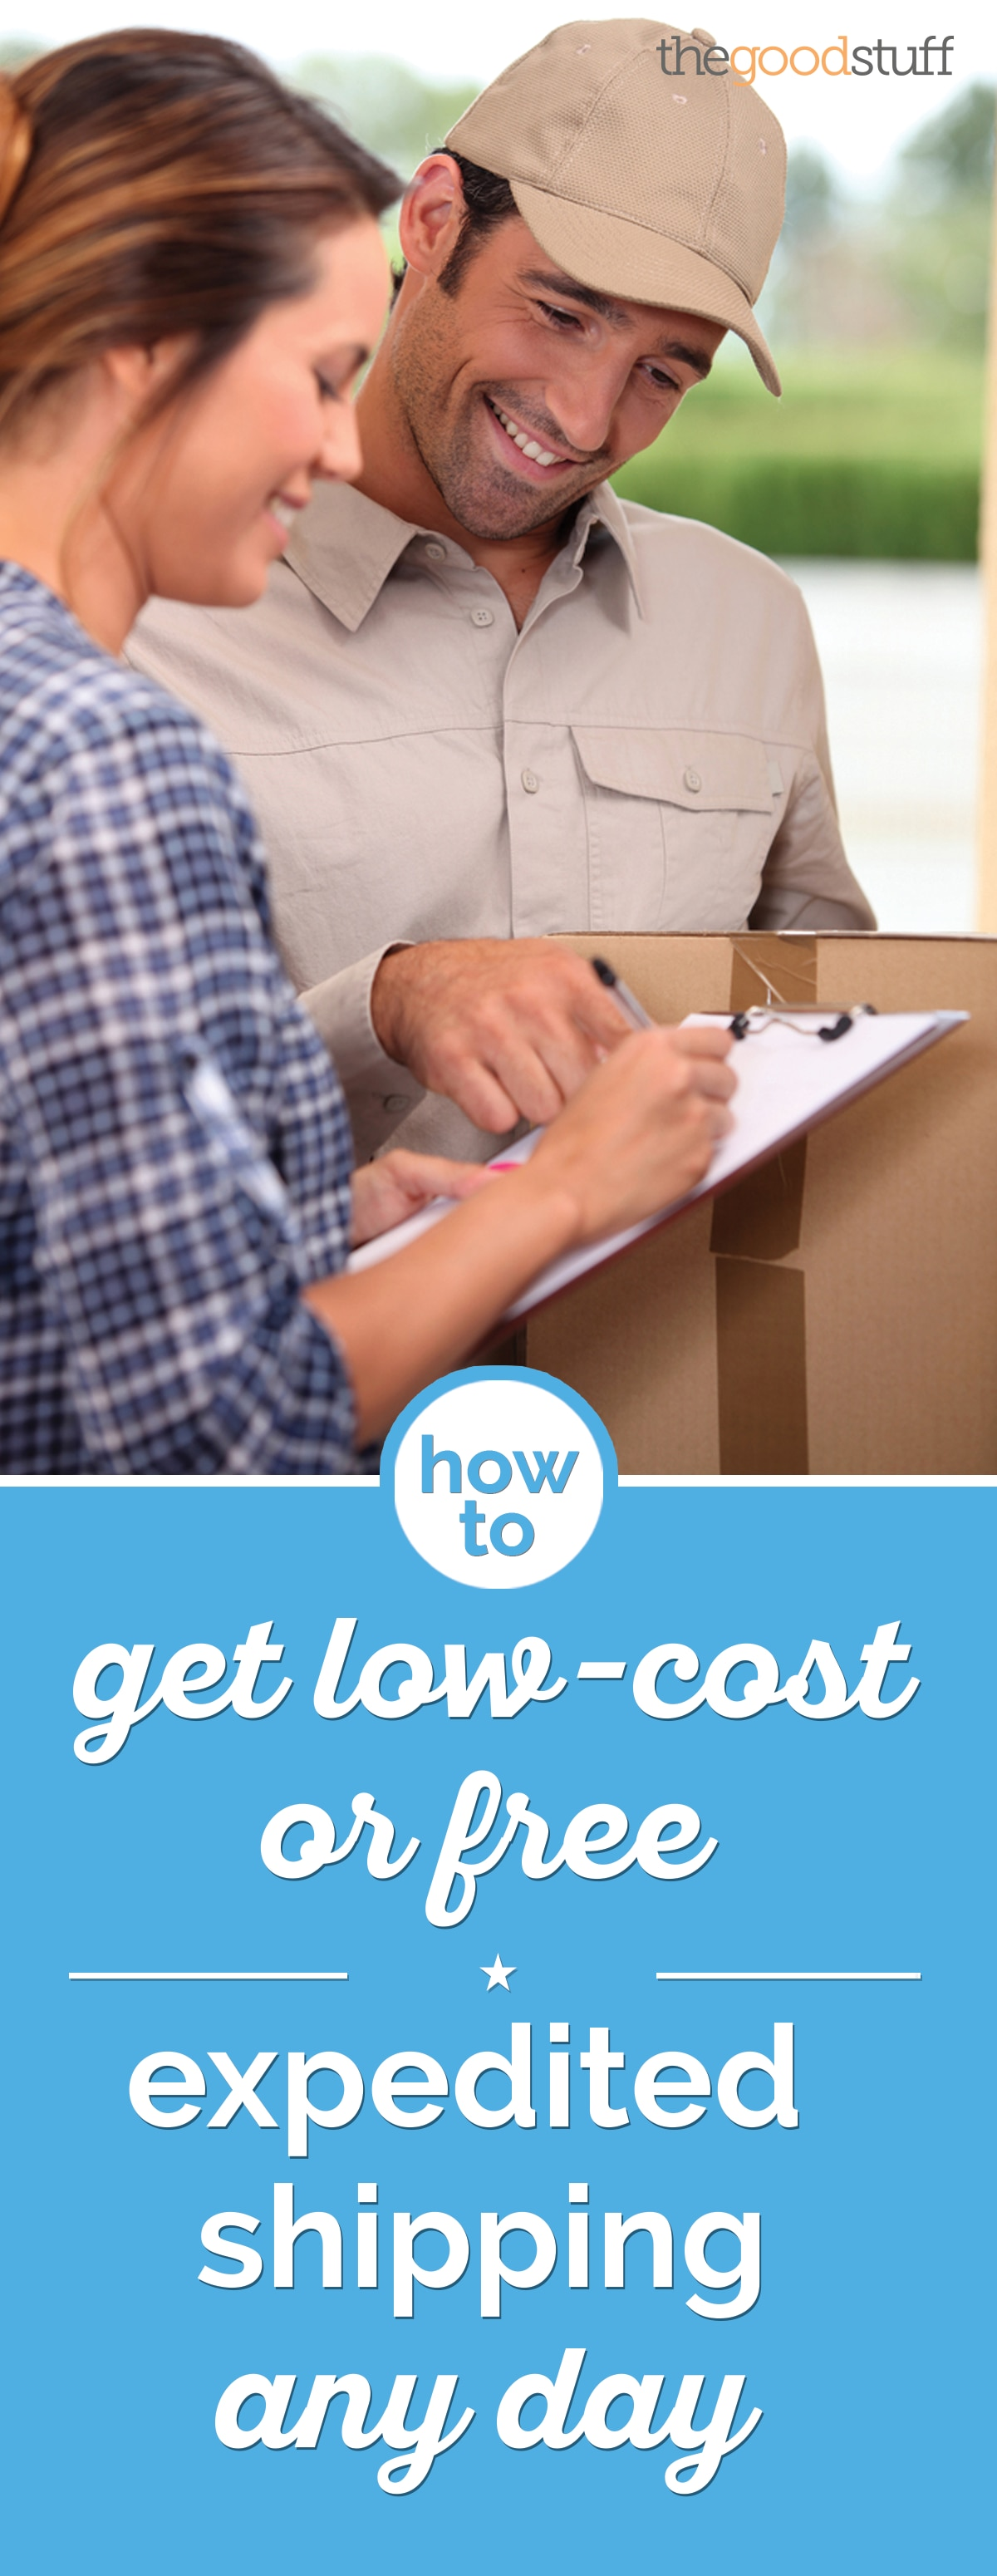 How to Get Low-Cost or Free Expedited Shipping Any Day | thegoodstuff